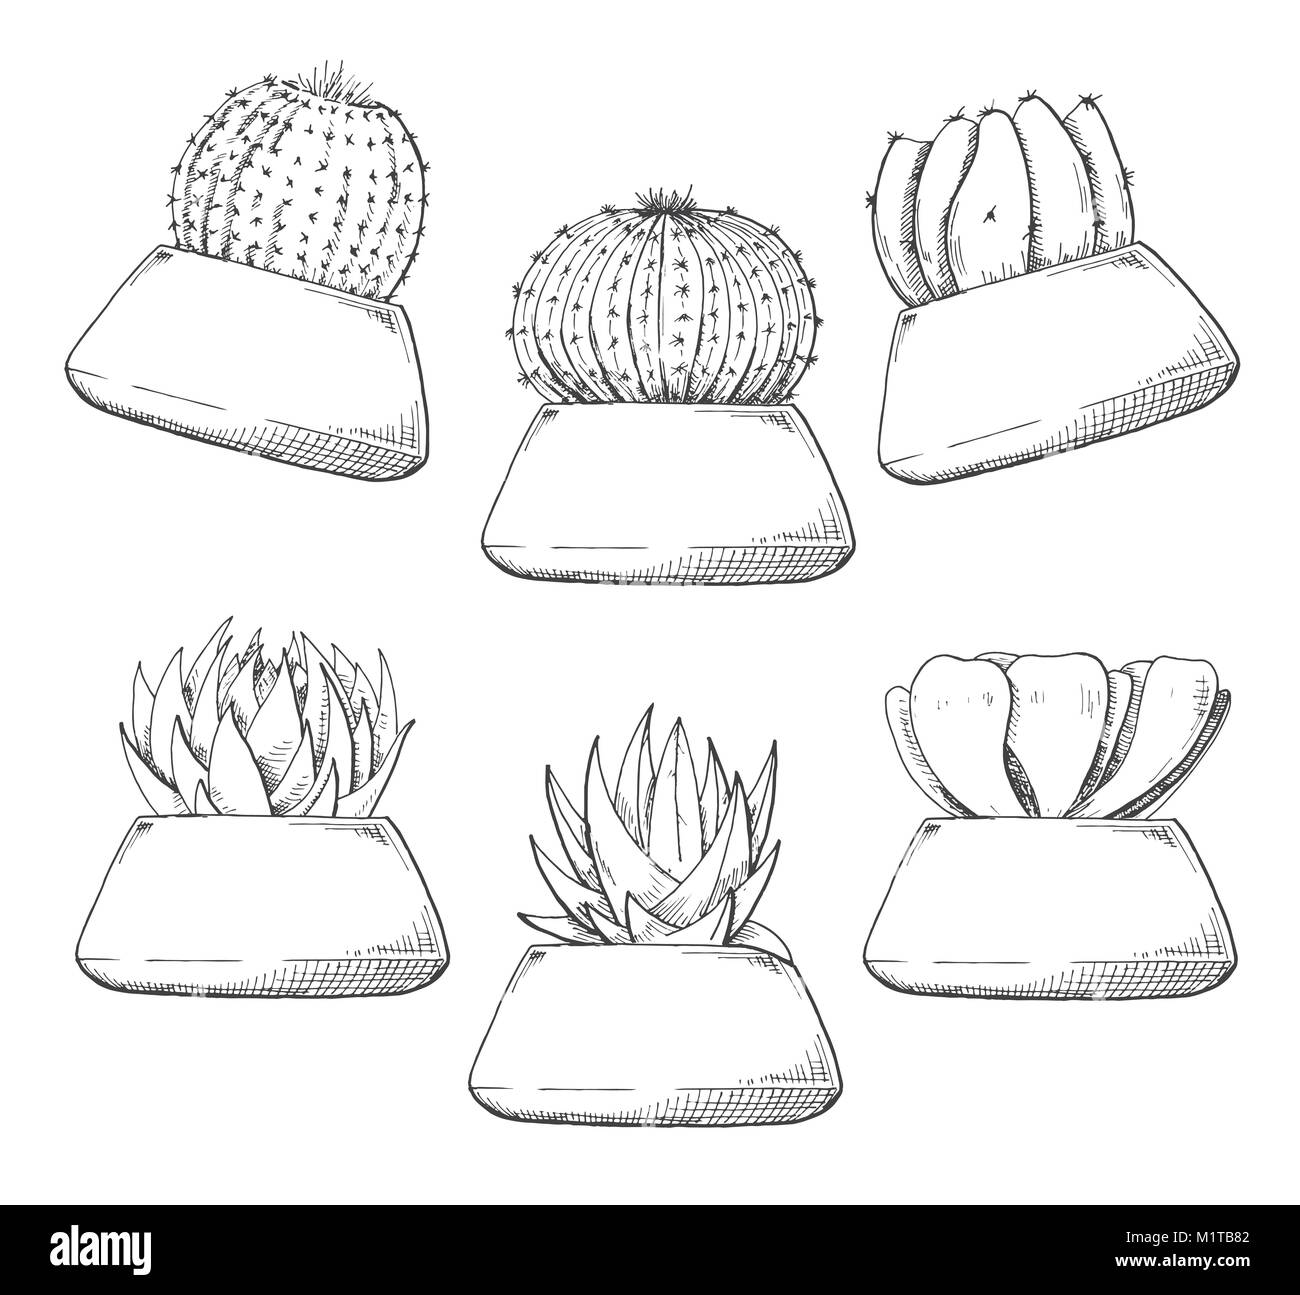 Sketch Of Succulents In Pots Vector Illustration Of A Sketch Style Stock Vector Image Art Alamy